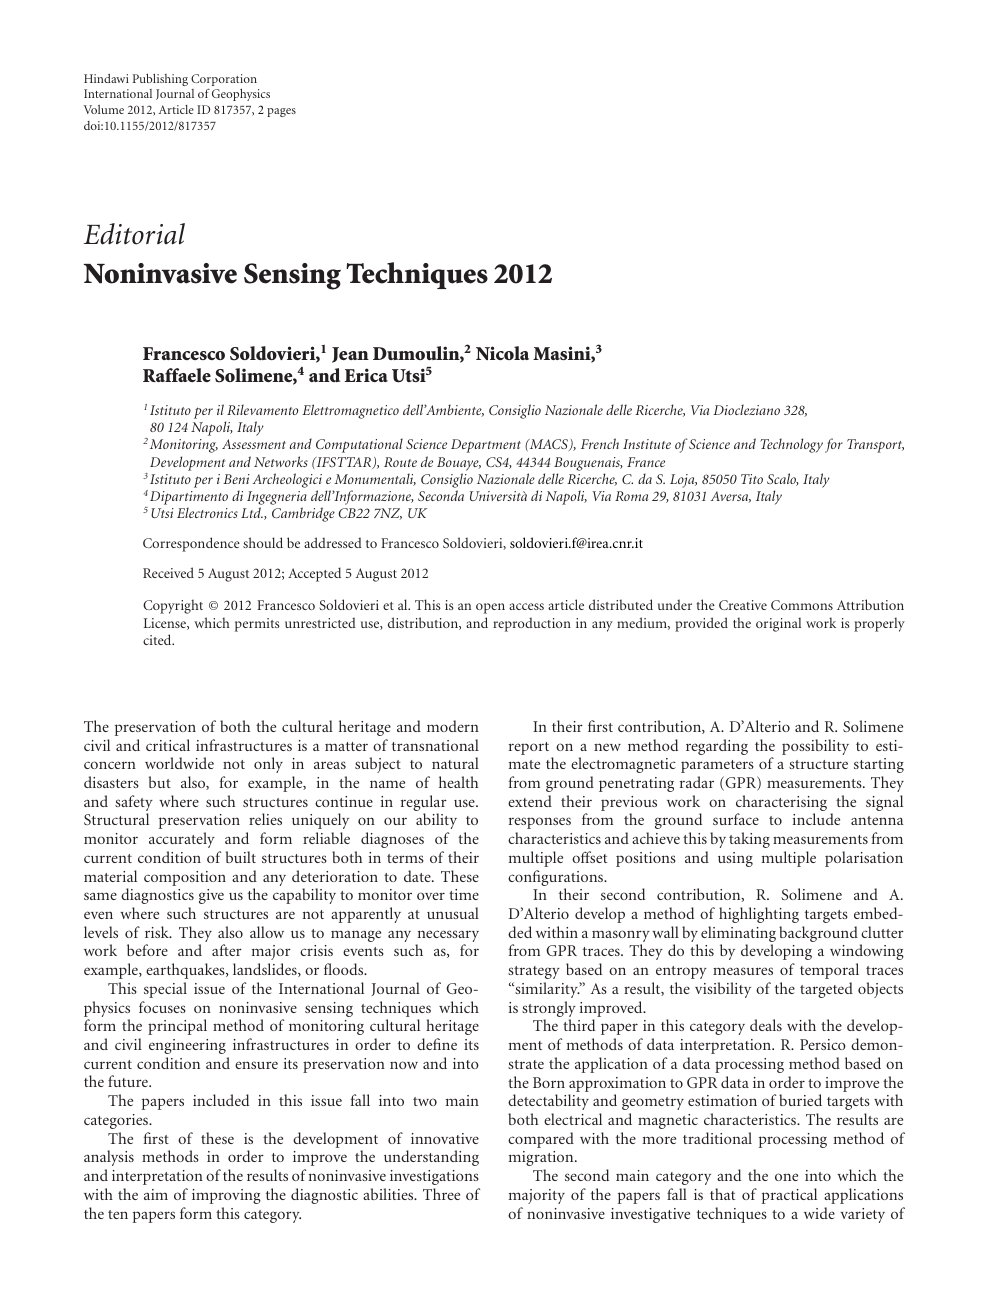 Noninvasive Sensing Techniques 2012 – topic of research